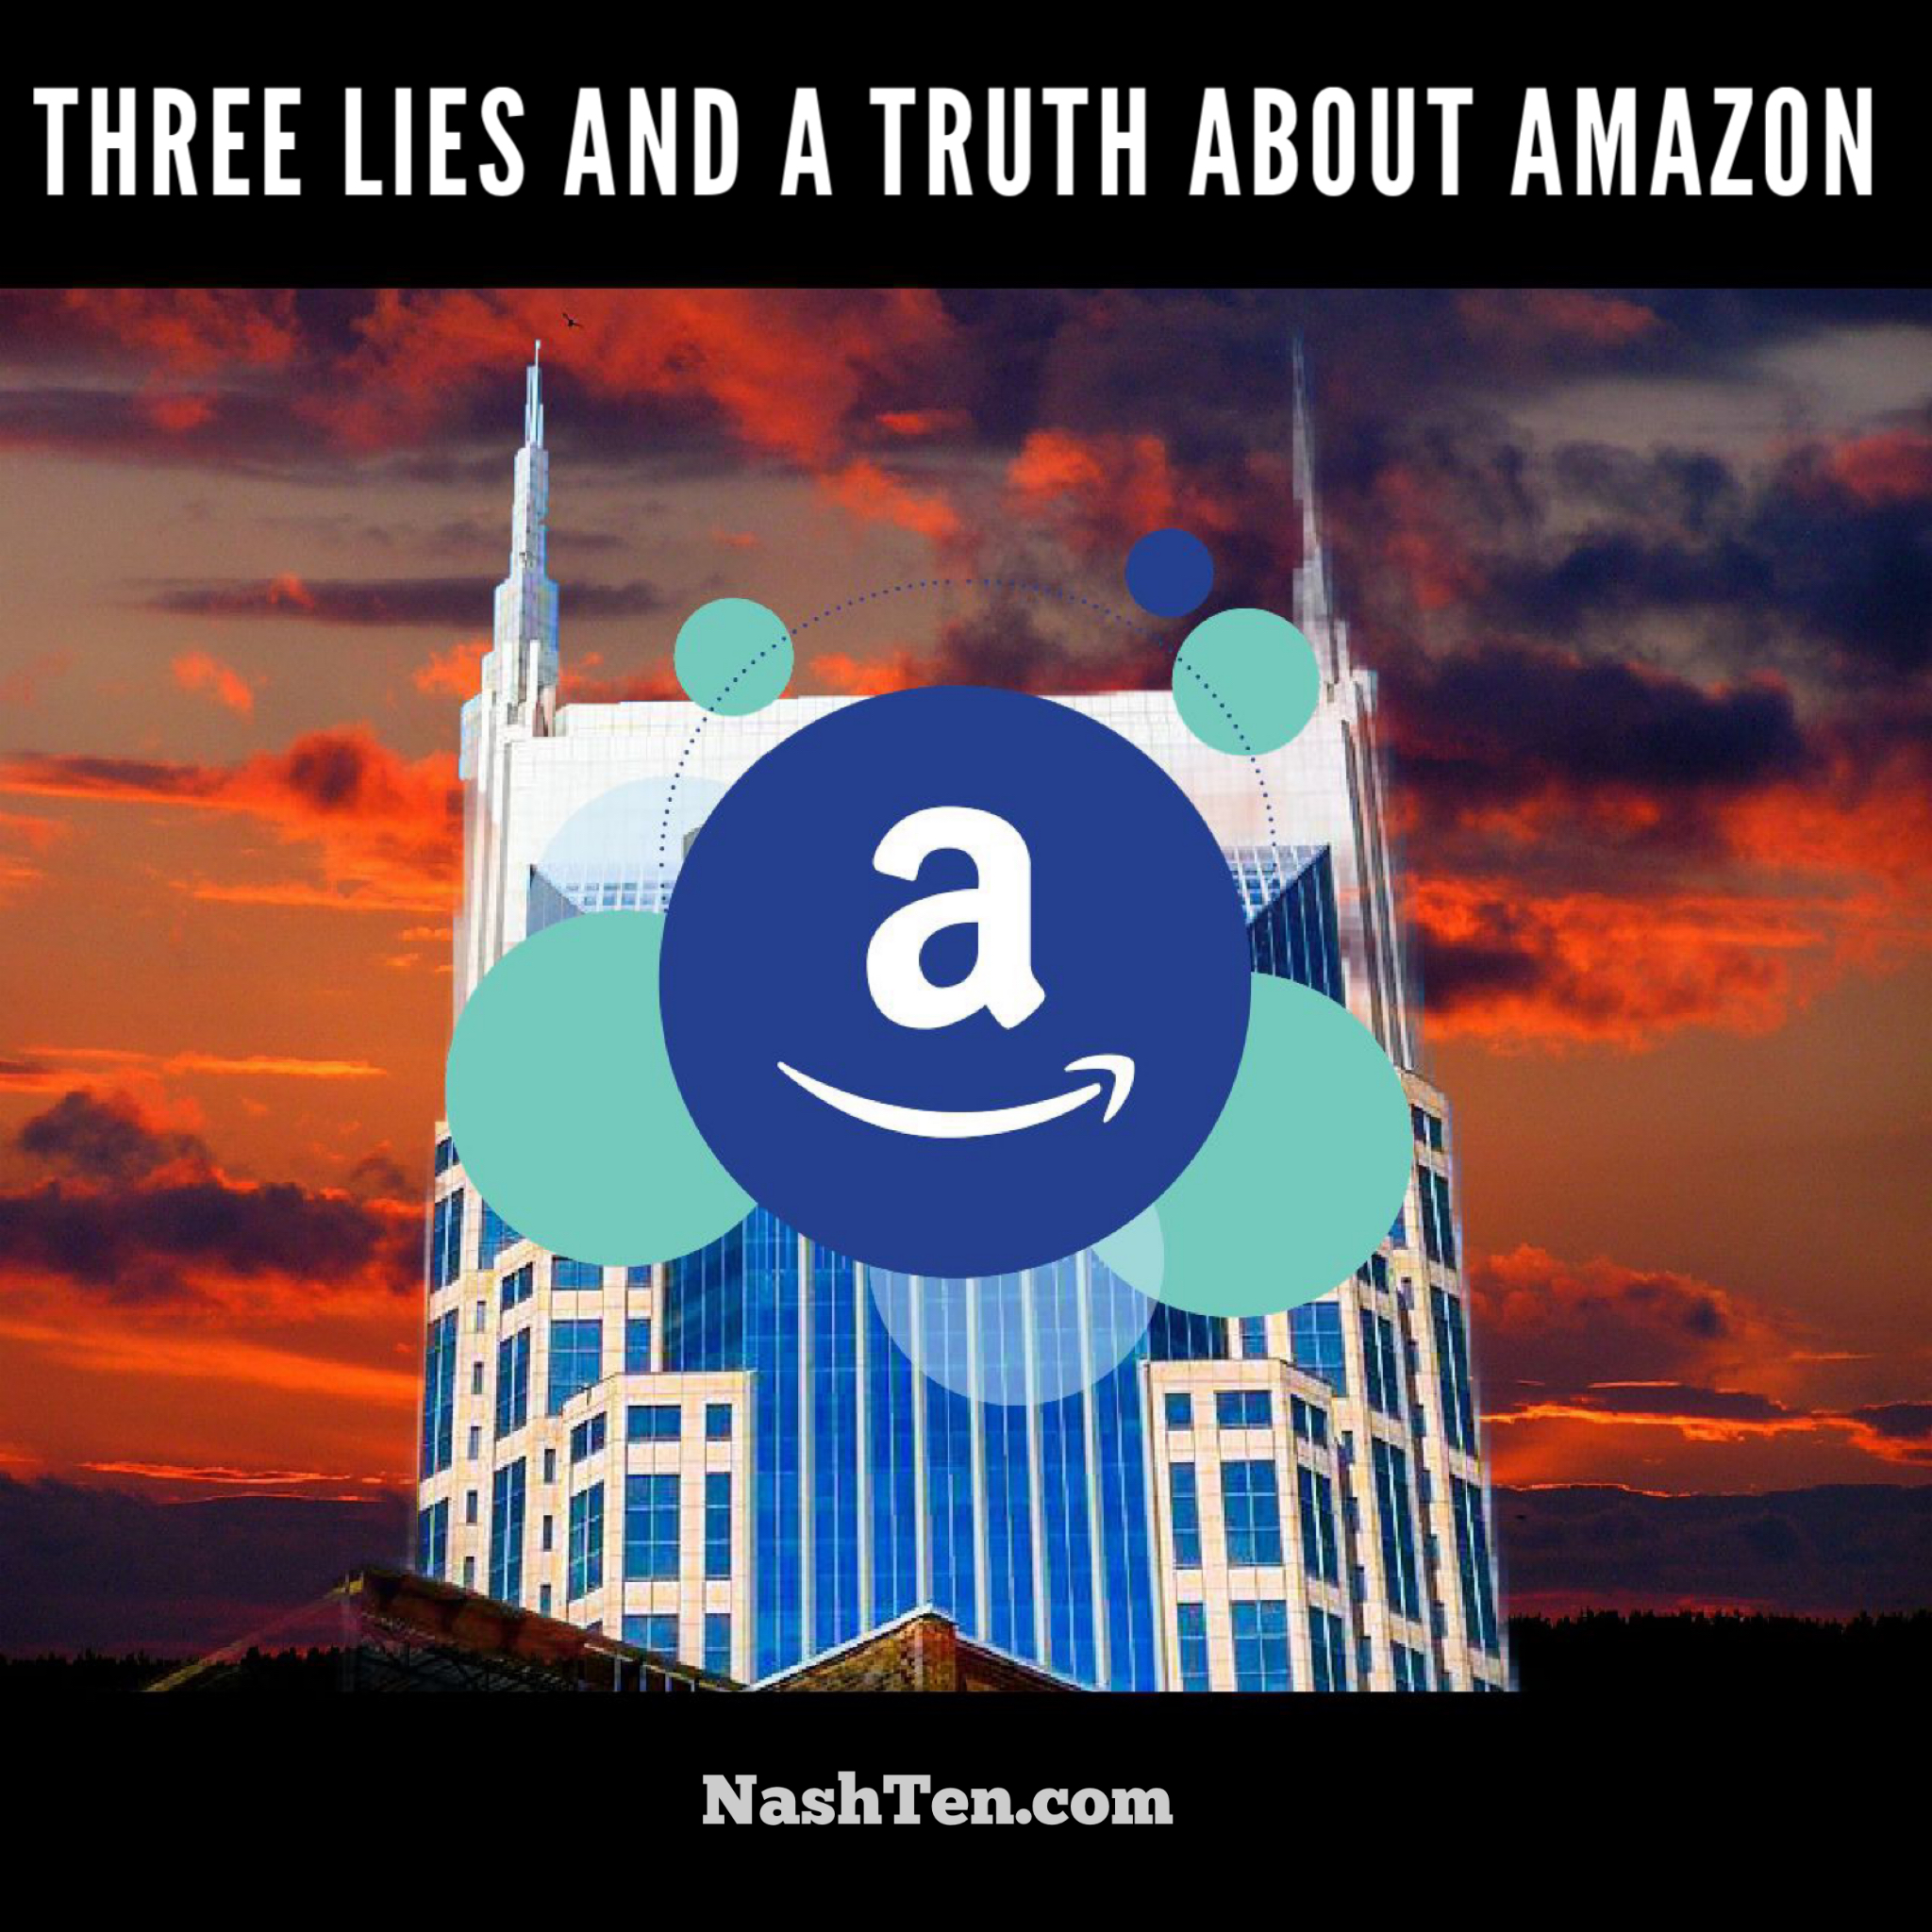 3 lies and the truth about Amazon coming to Nashville